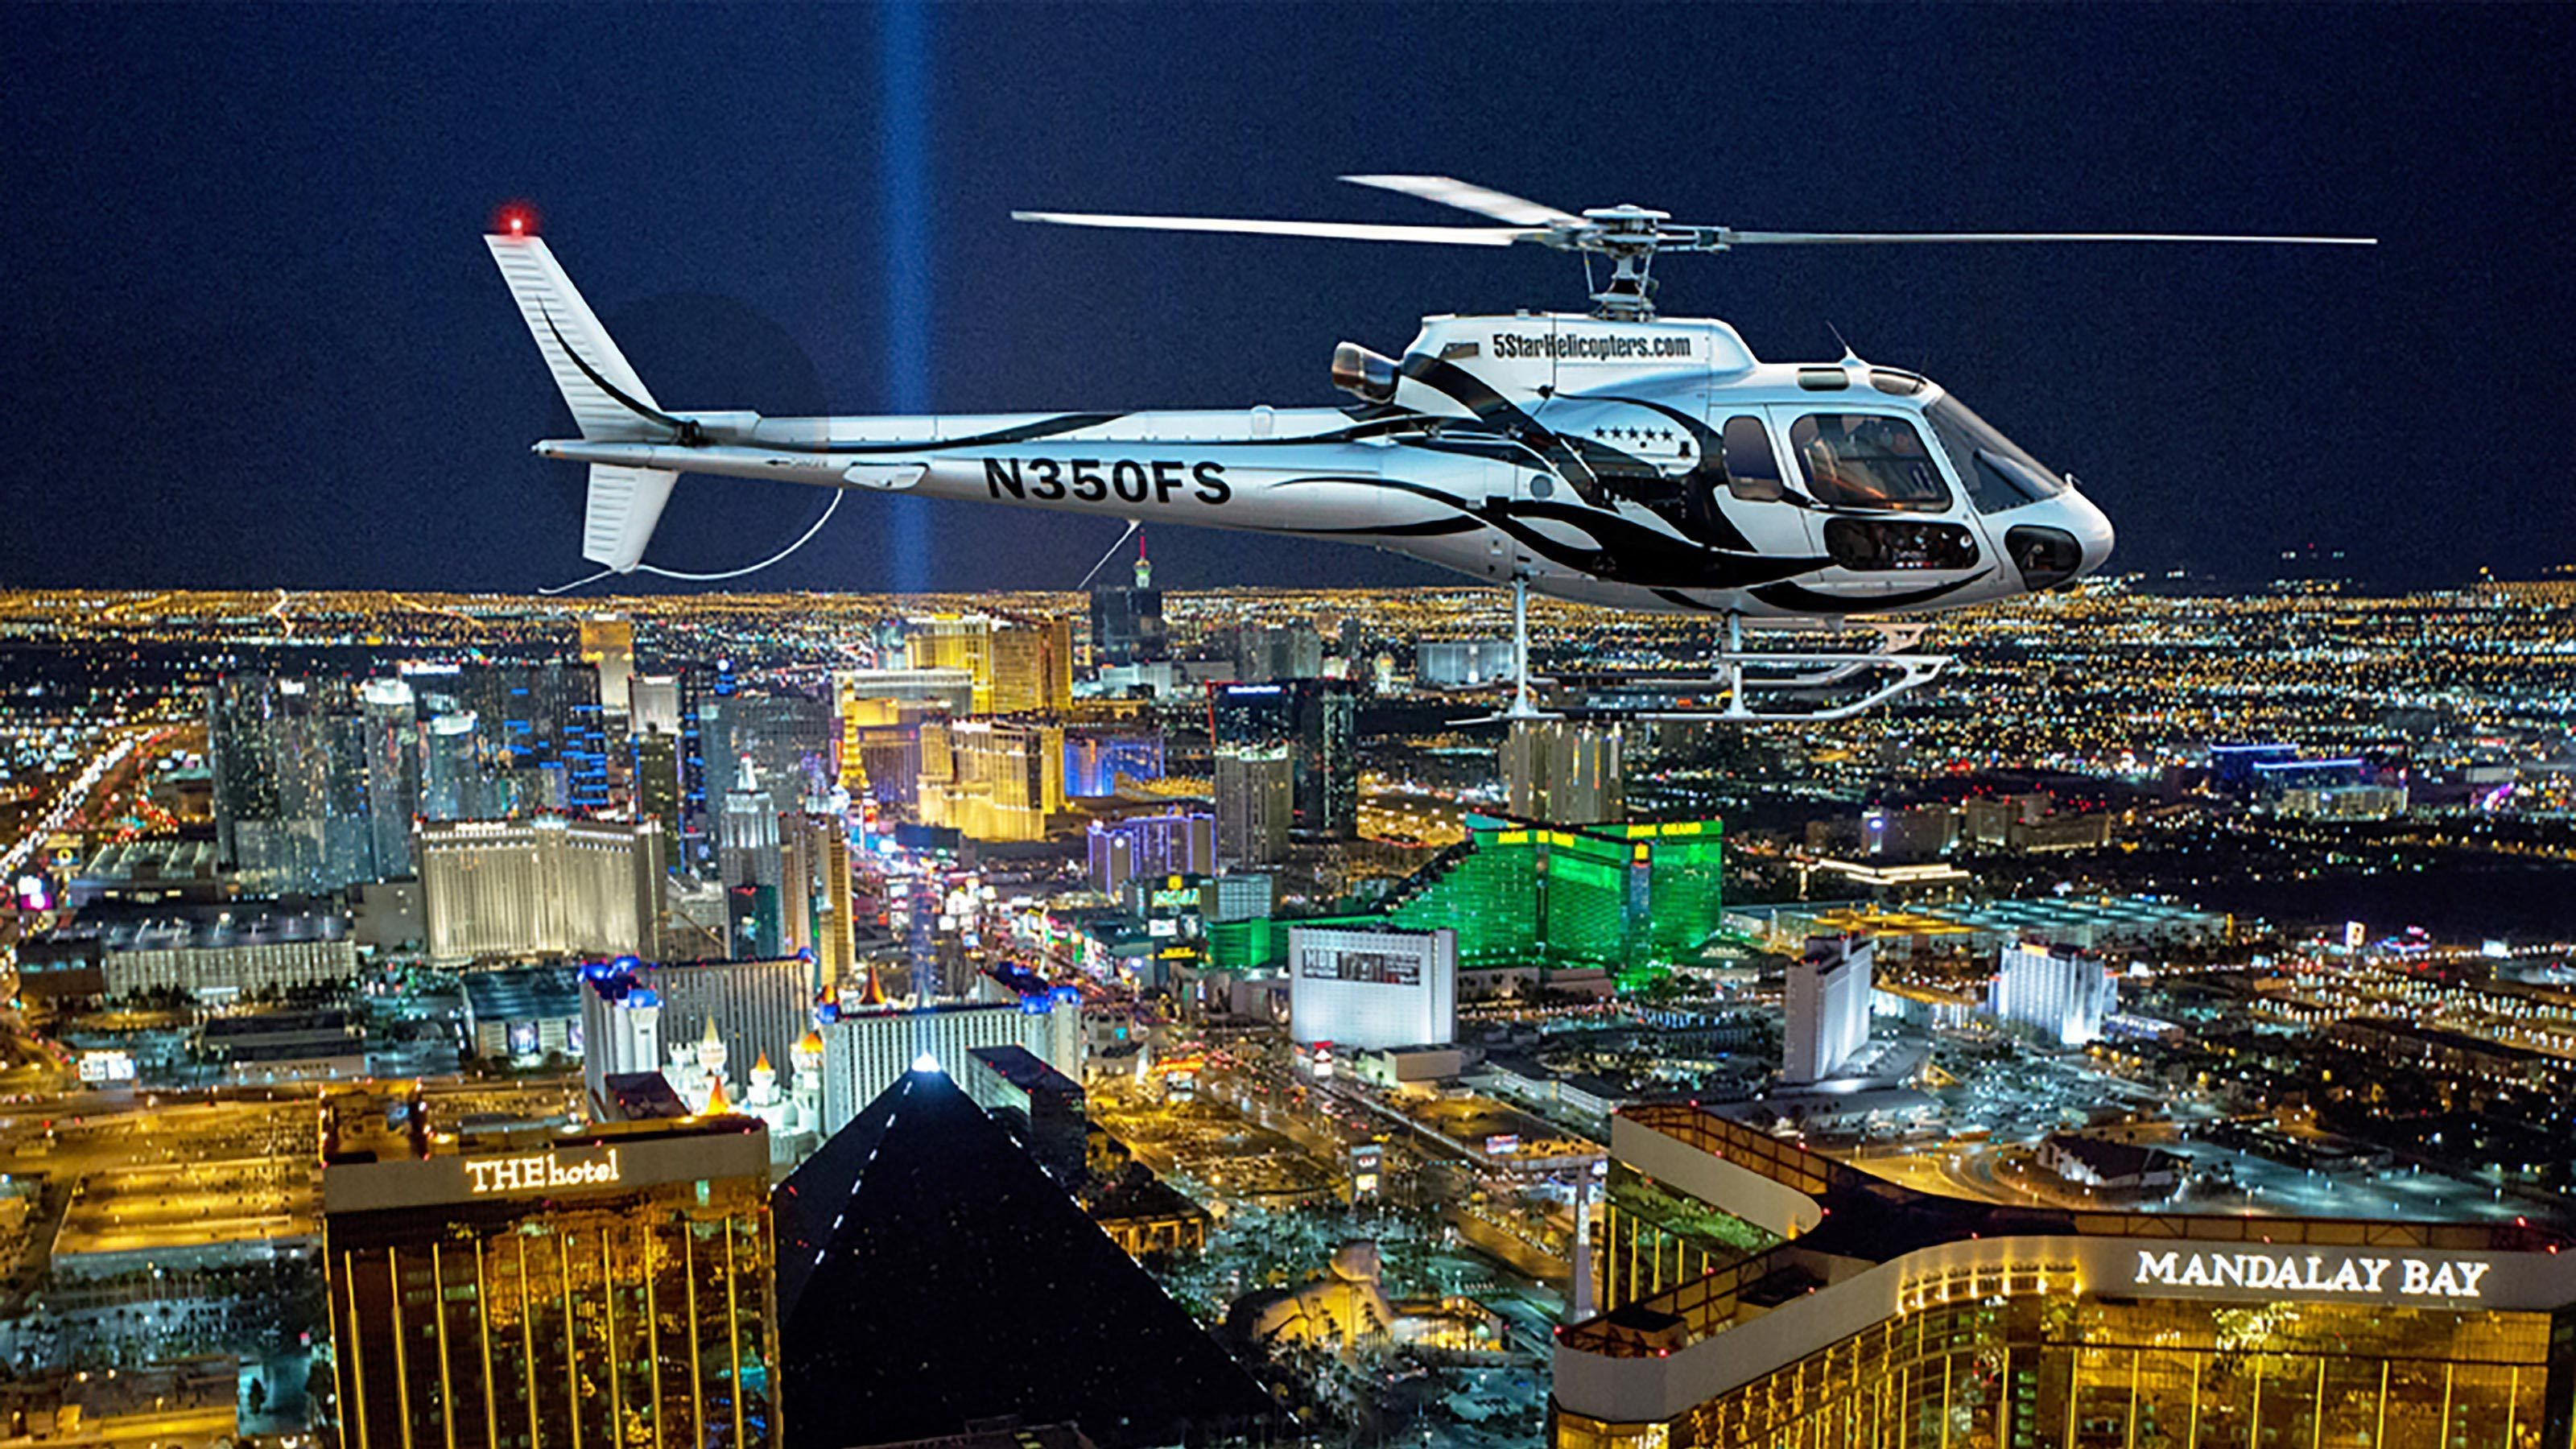 Helicopter flying over Las Vegas at night